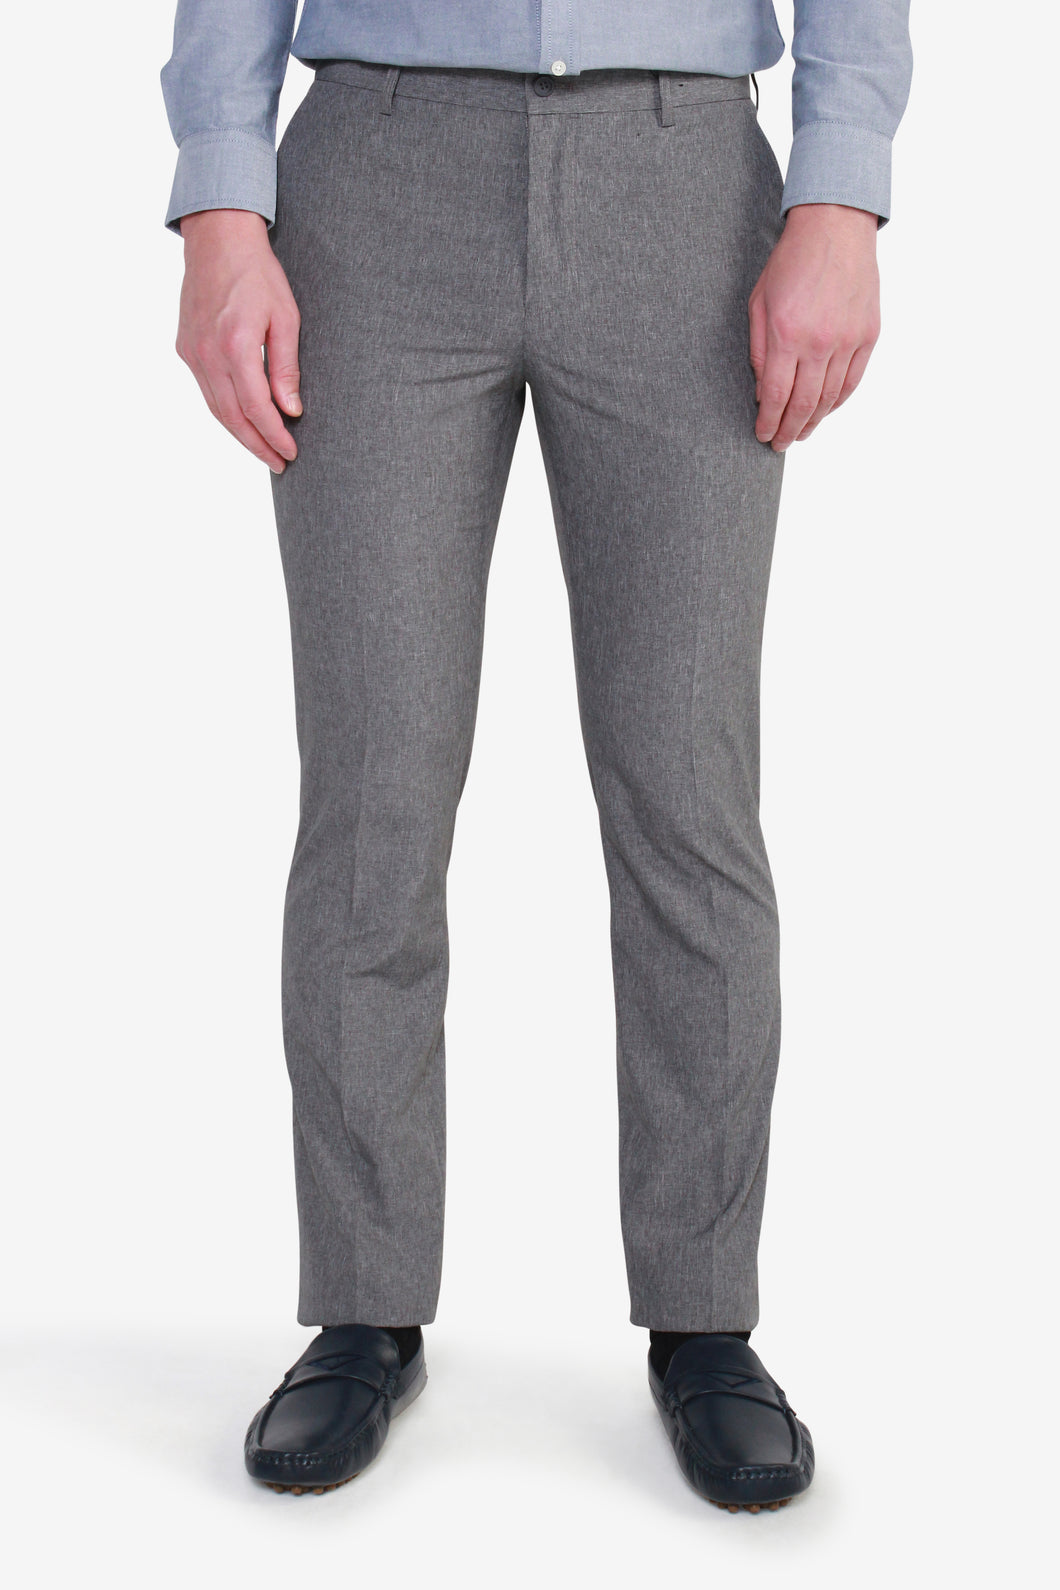 Ultra Slim Fit Polyester Plain Weave Pants